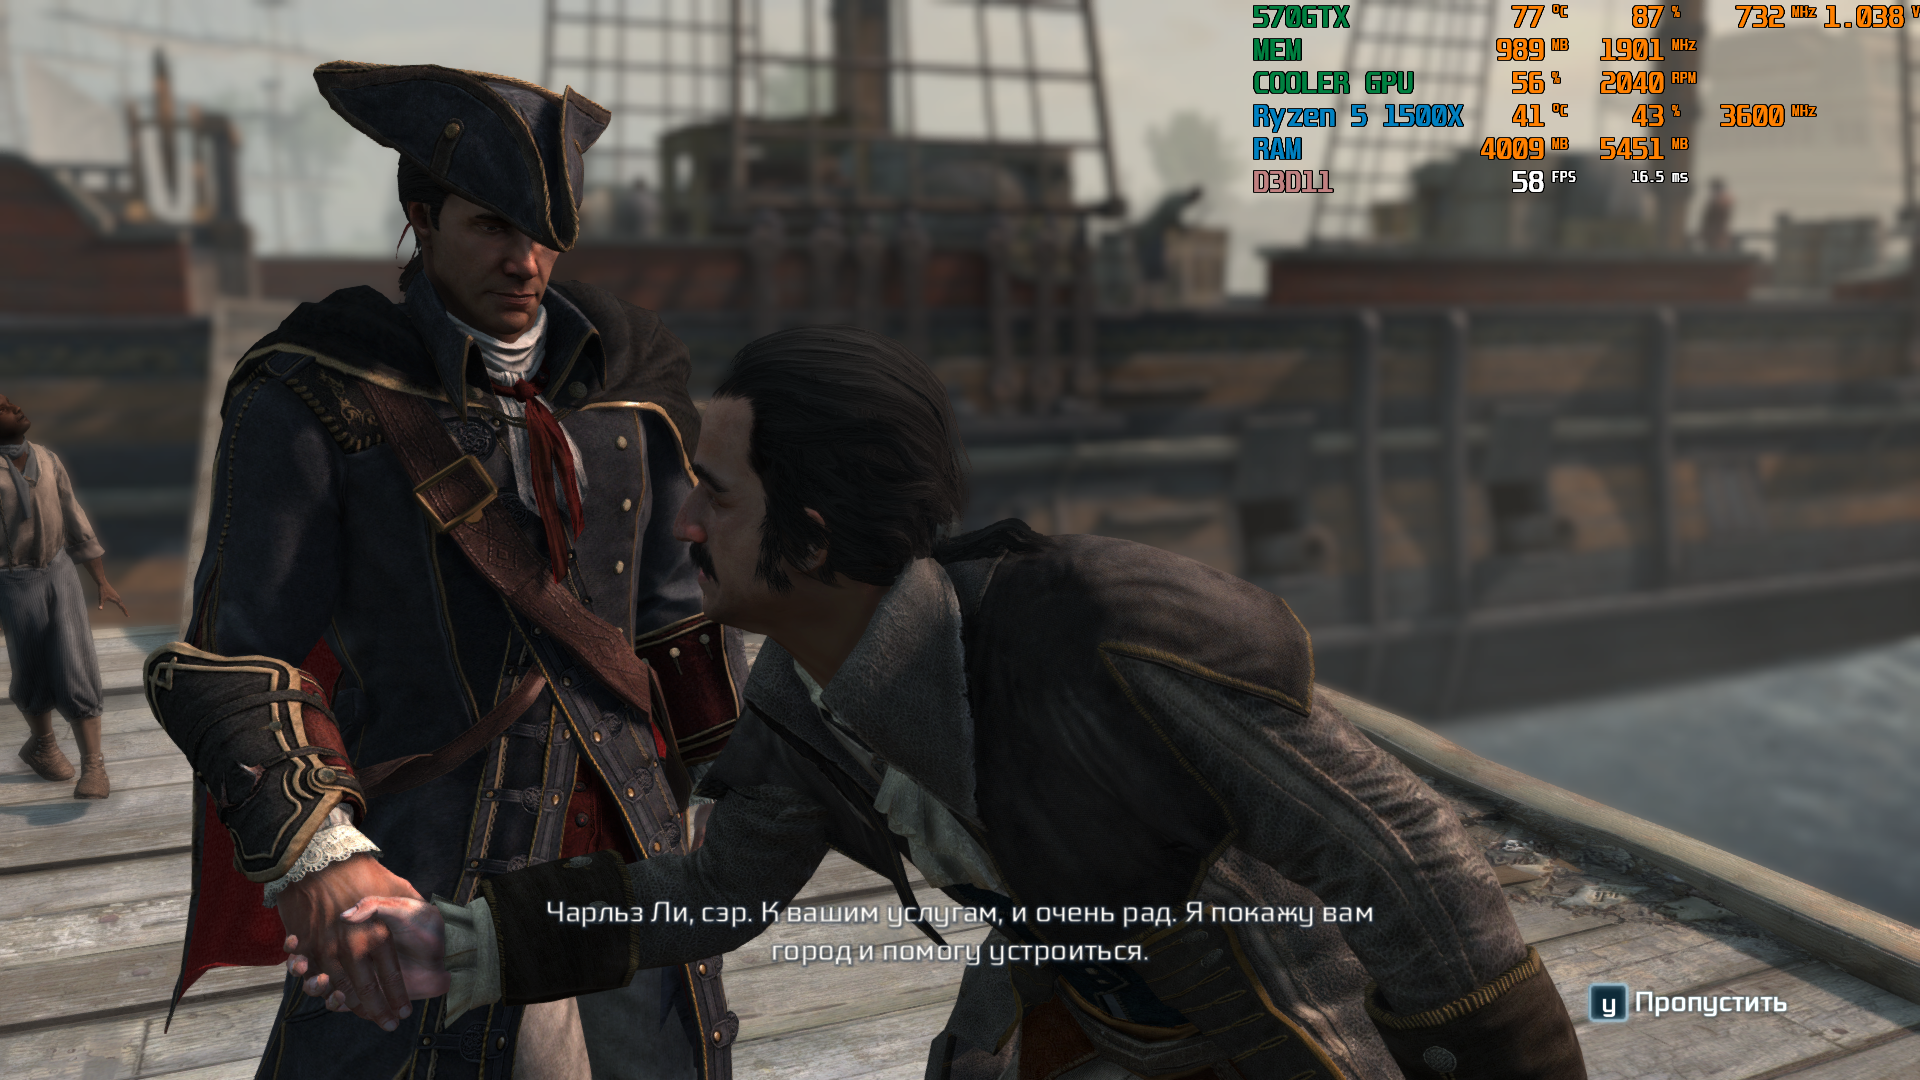 AC3SP_2018_09_21_22_48_41_891.png - Assassin's Creed 3